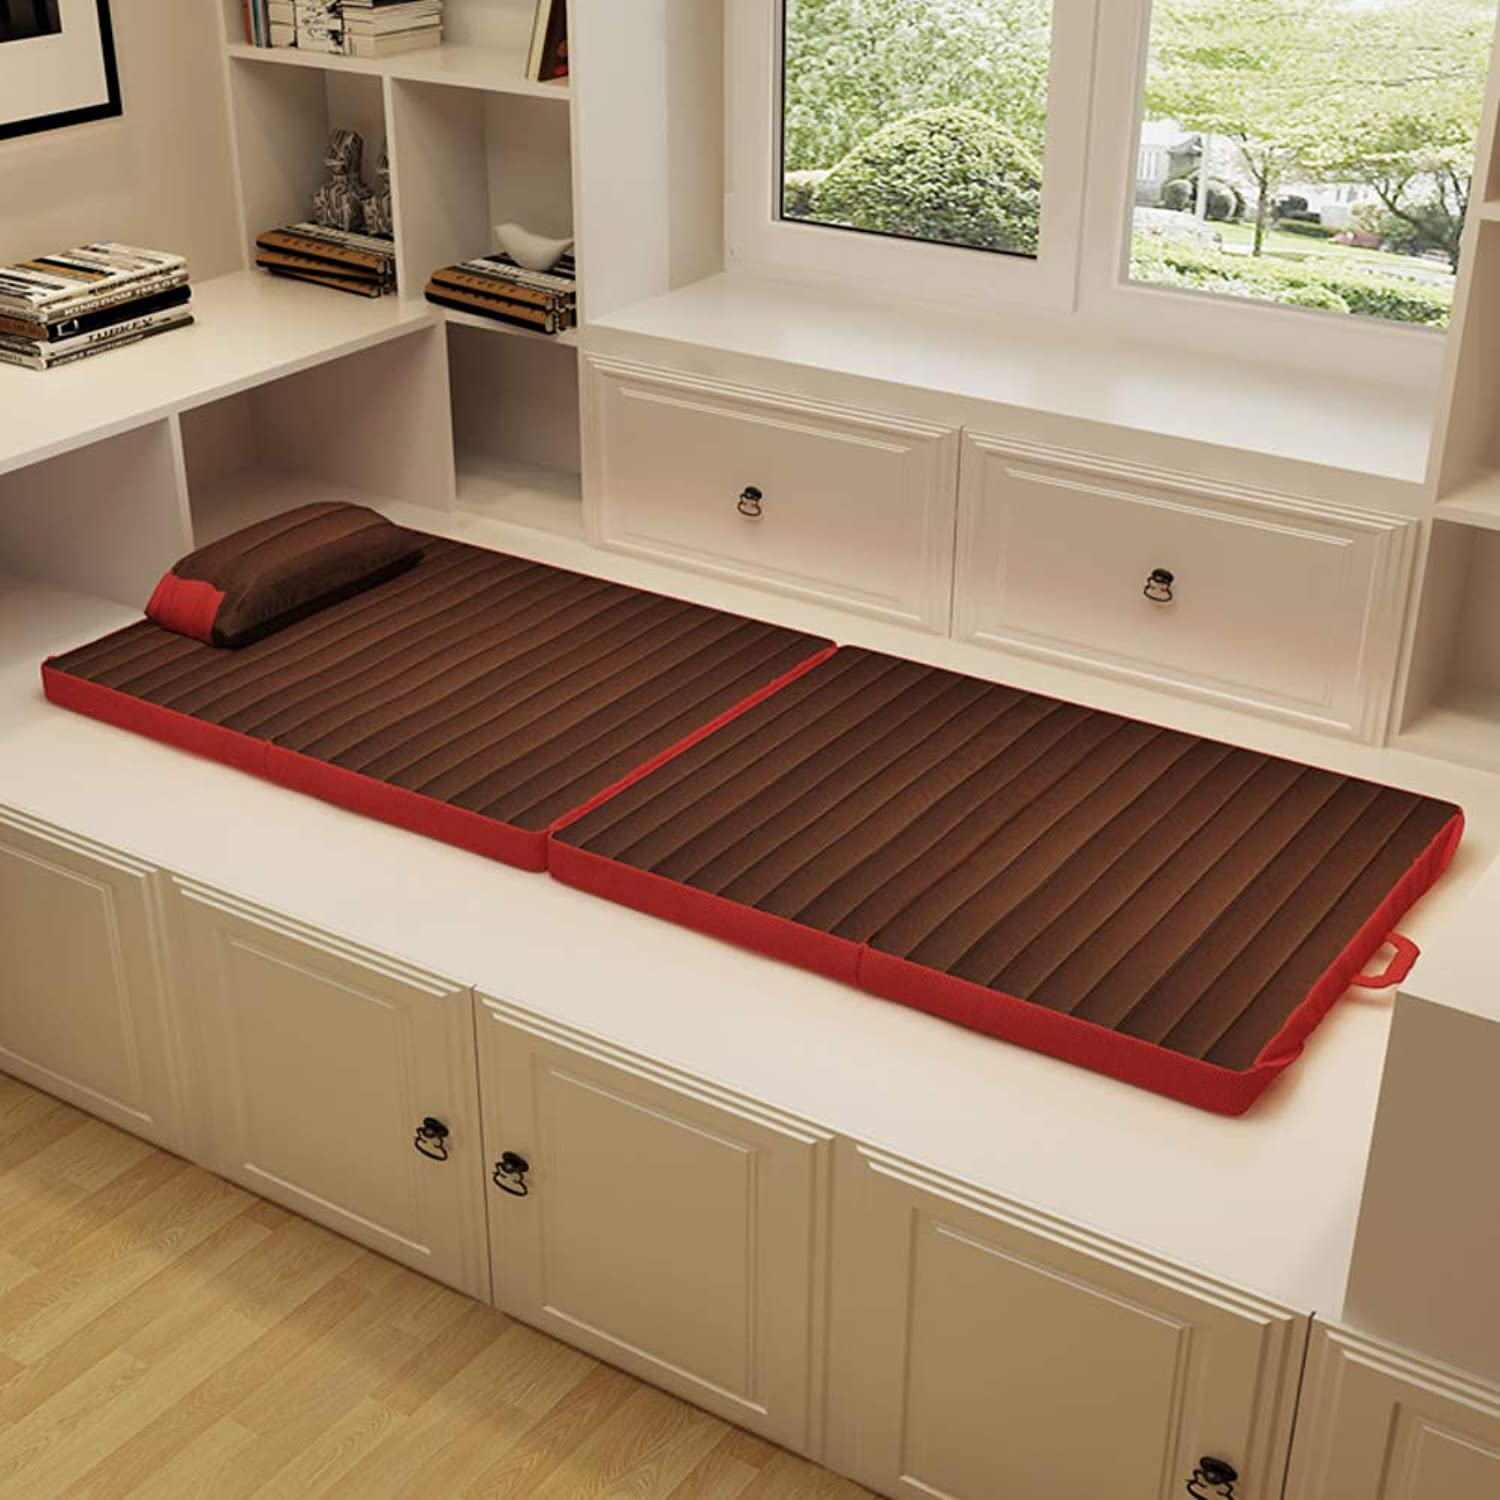 Folding Tatami Floor mat, Moisture Proof Futon Mattress Sleeping mat for Dorm Office Camping-Coffee